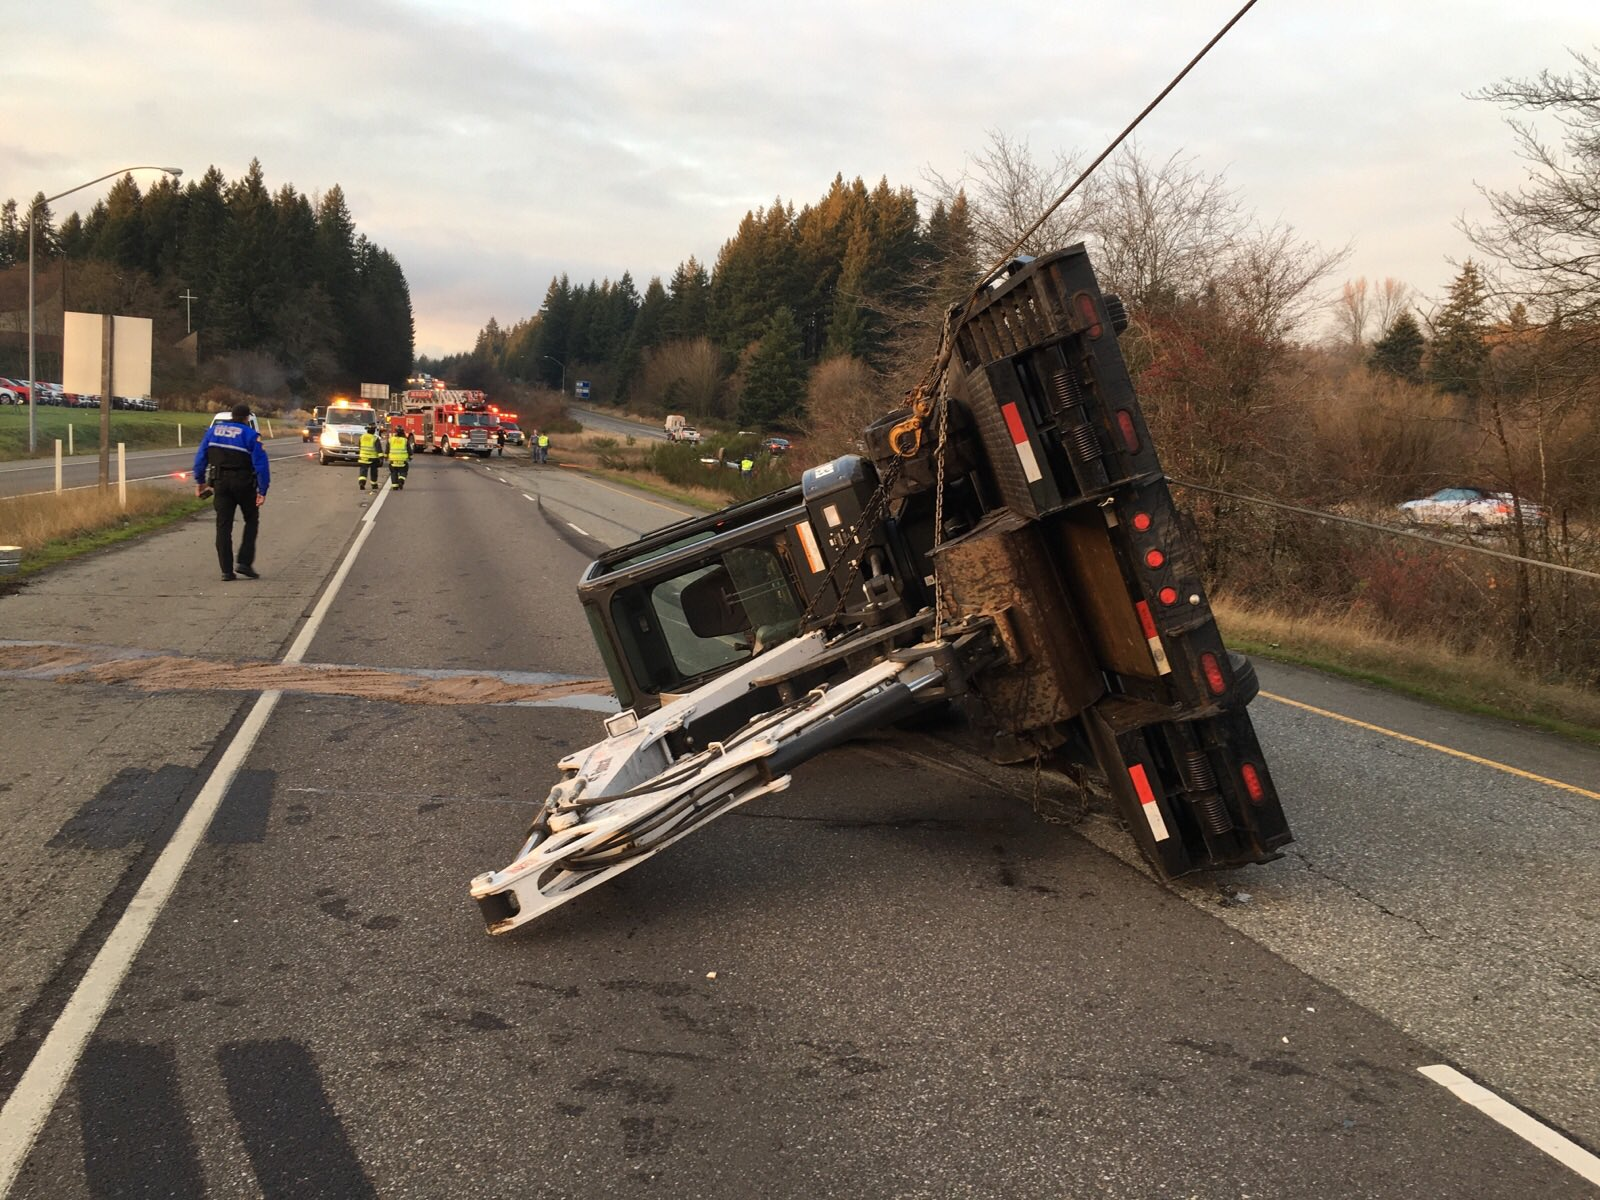 The State Patrol is investigating after a stolen truck hauling a trailer with an excavator on it overturned on eastbound State Route 16 near Port Orchard Monday afternoon. (Photo: South King Fire & Rescue)